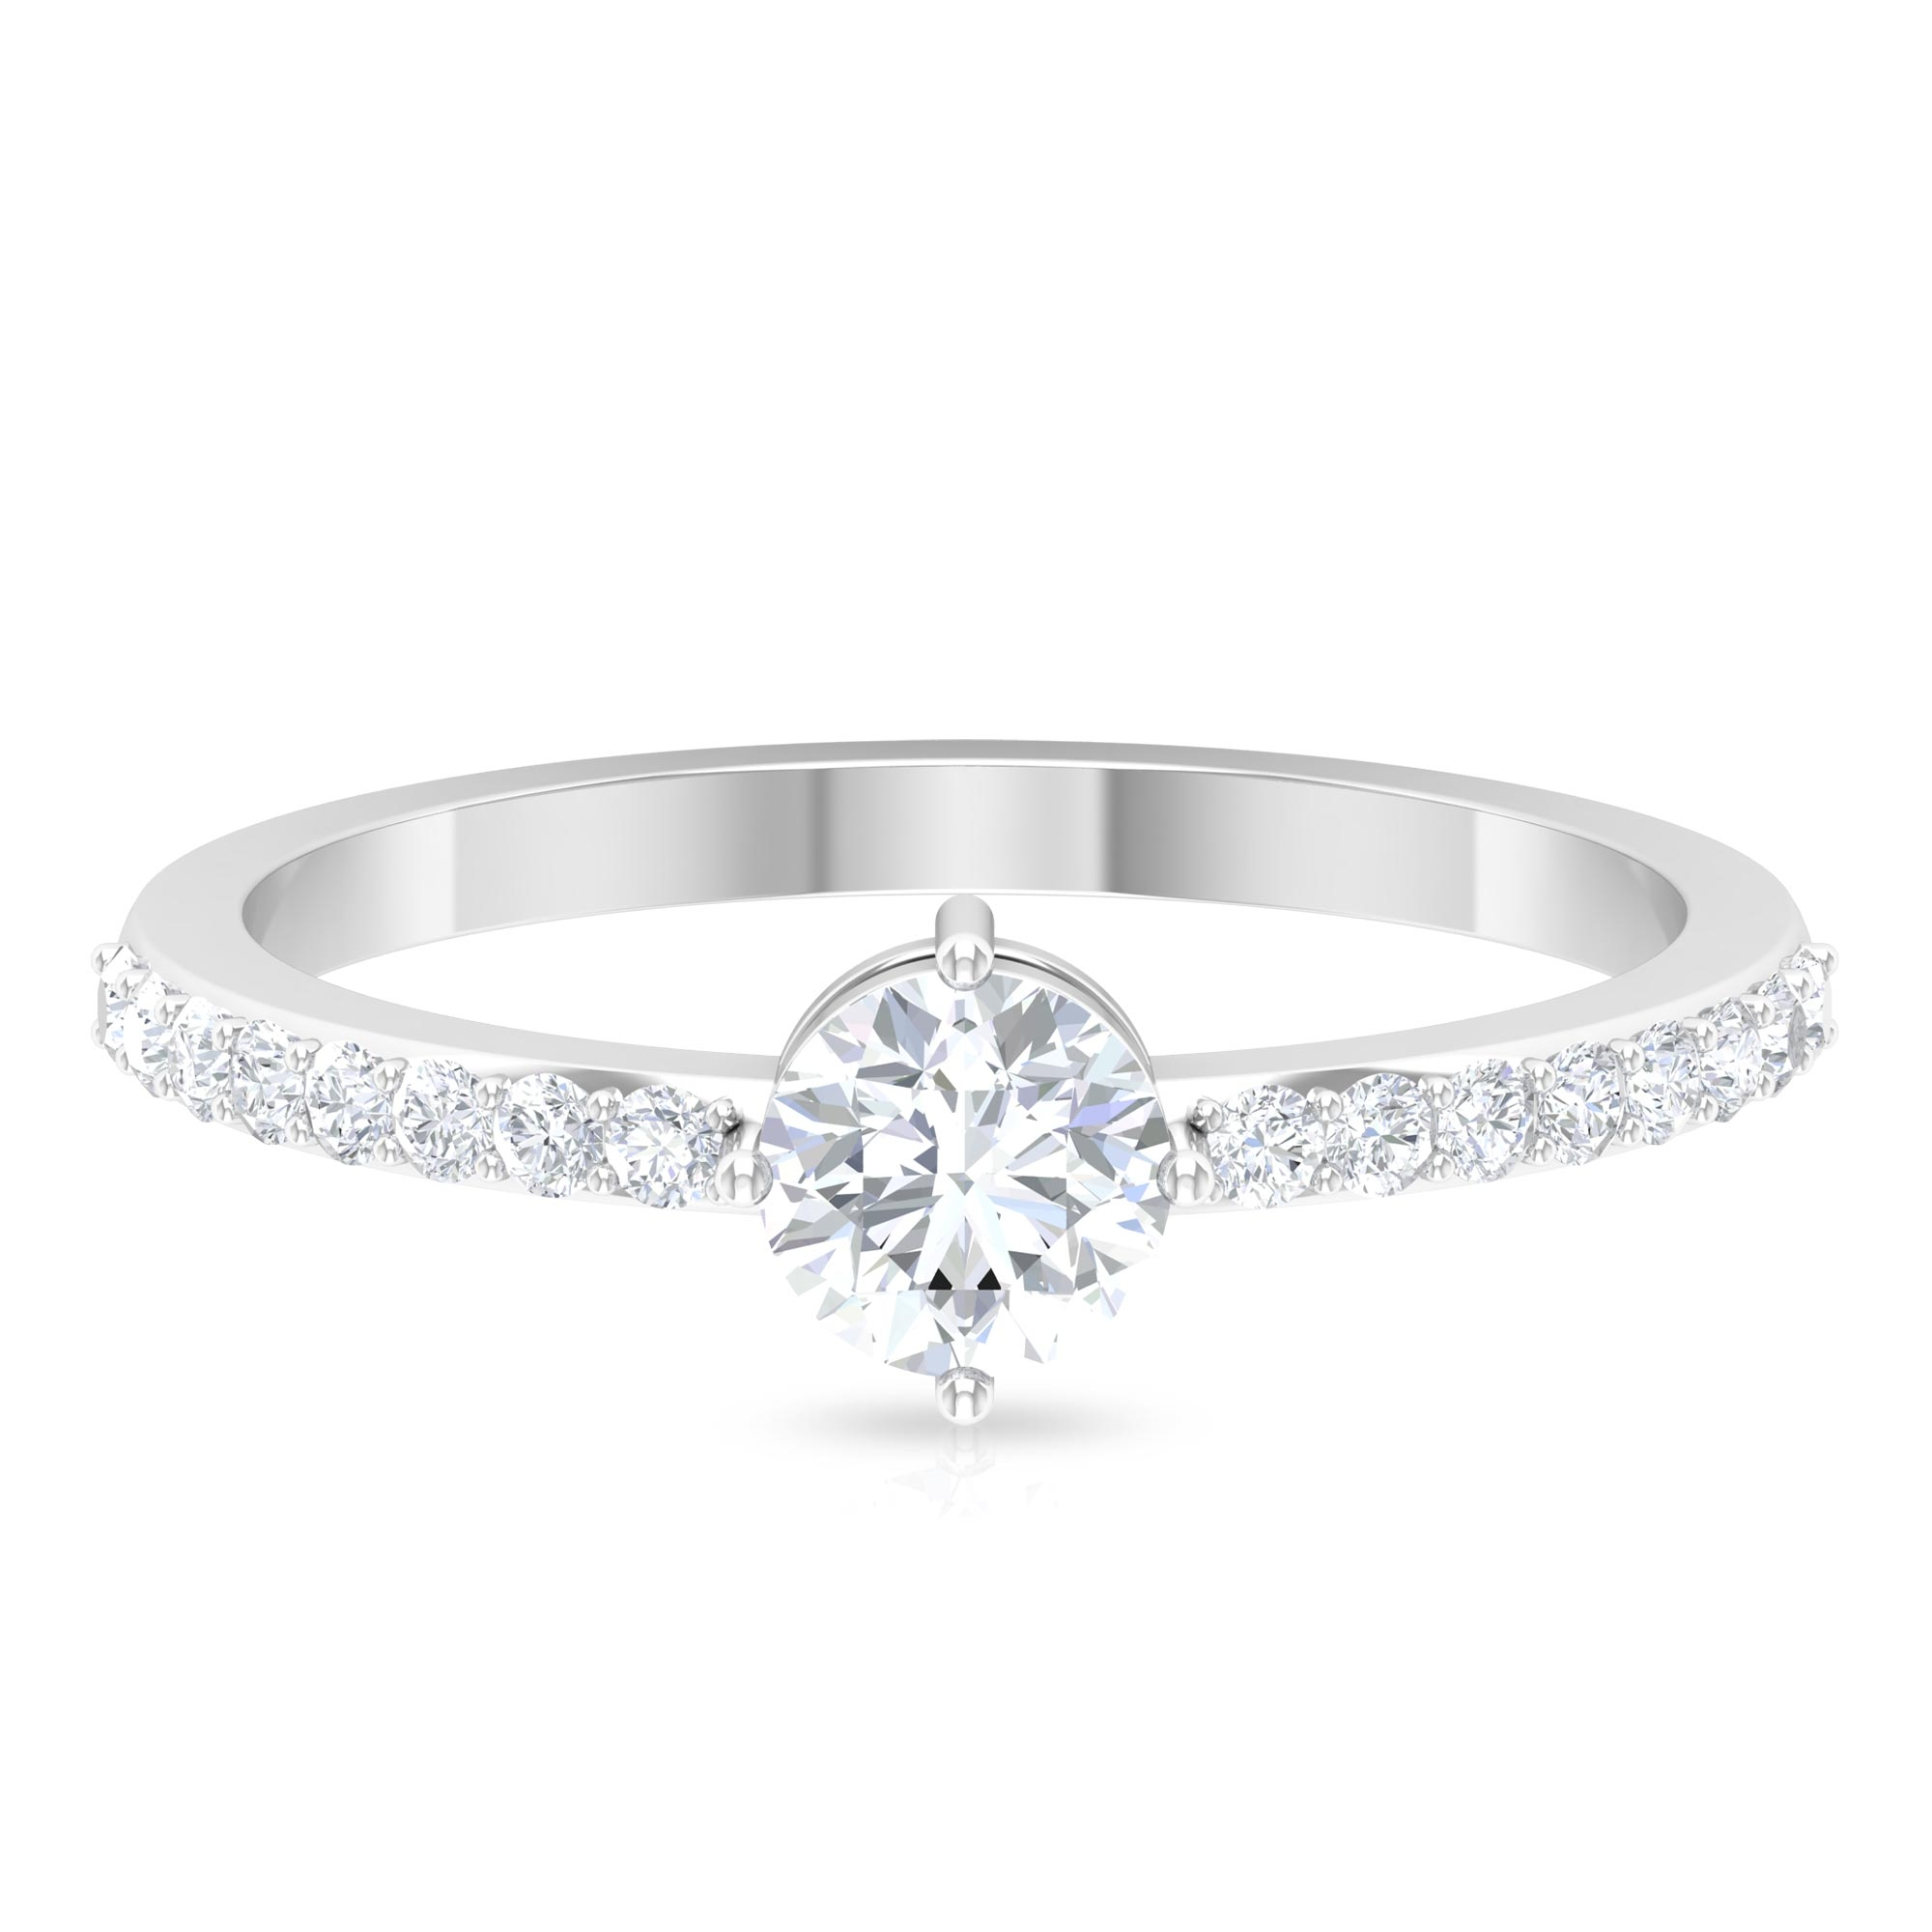 3/4 CT Round Cut Diamond Solitaire Ring in 4 Prong Diagonal Setting with Surface Side Stones